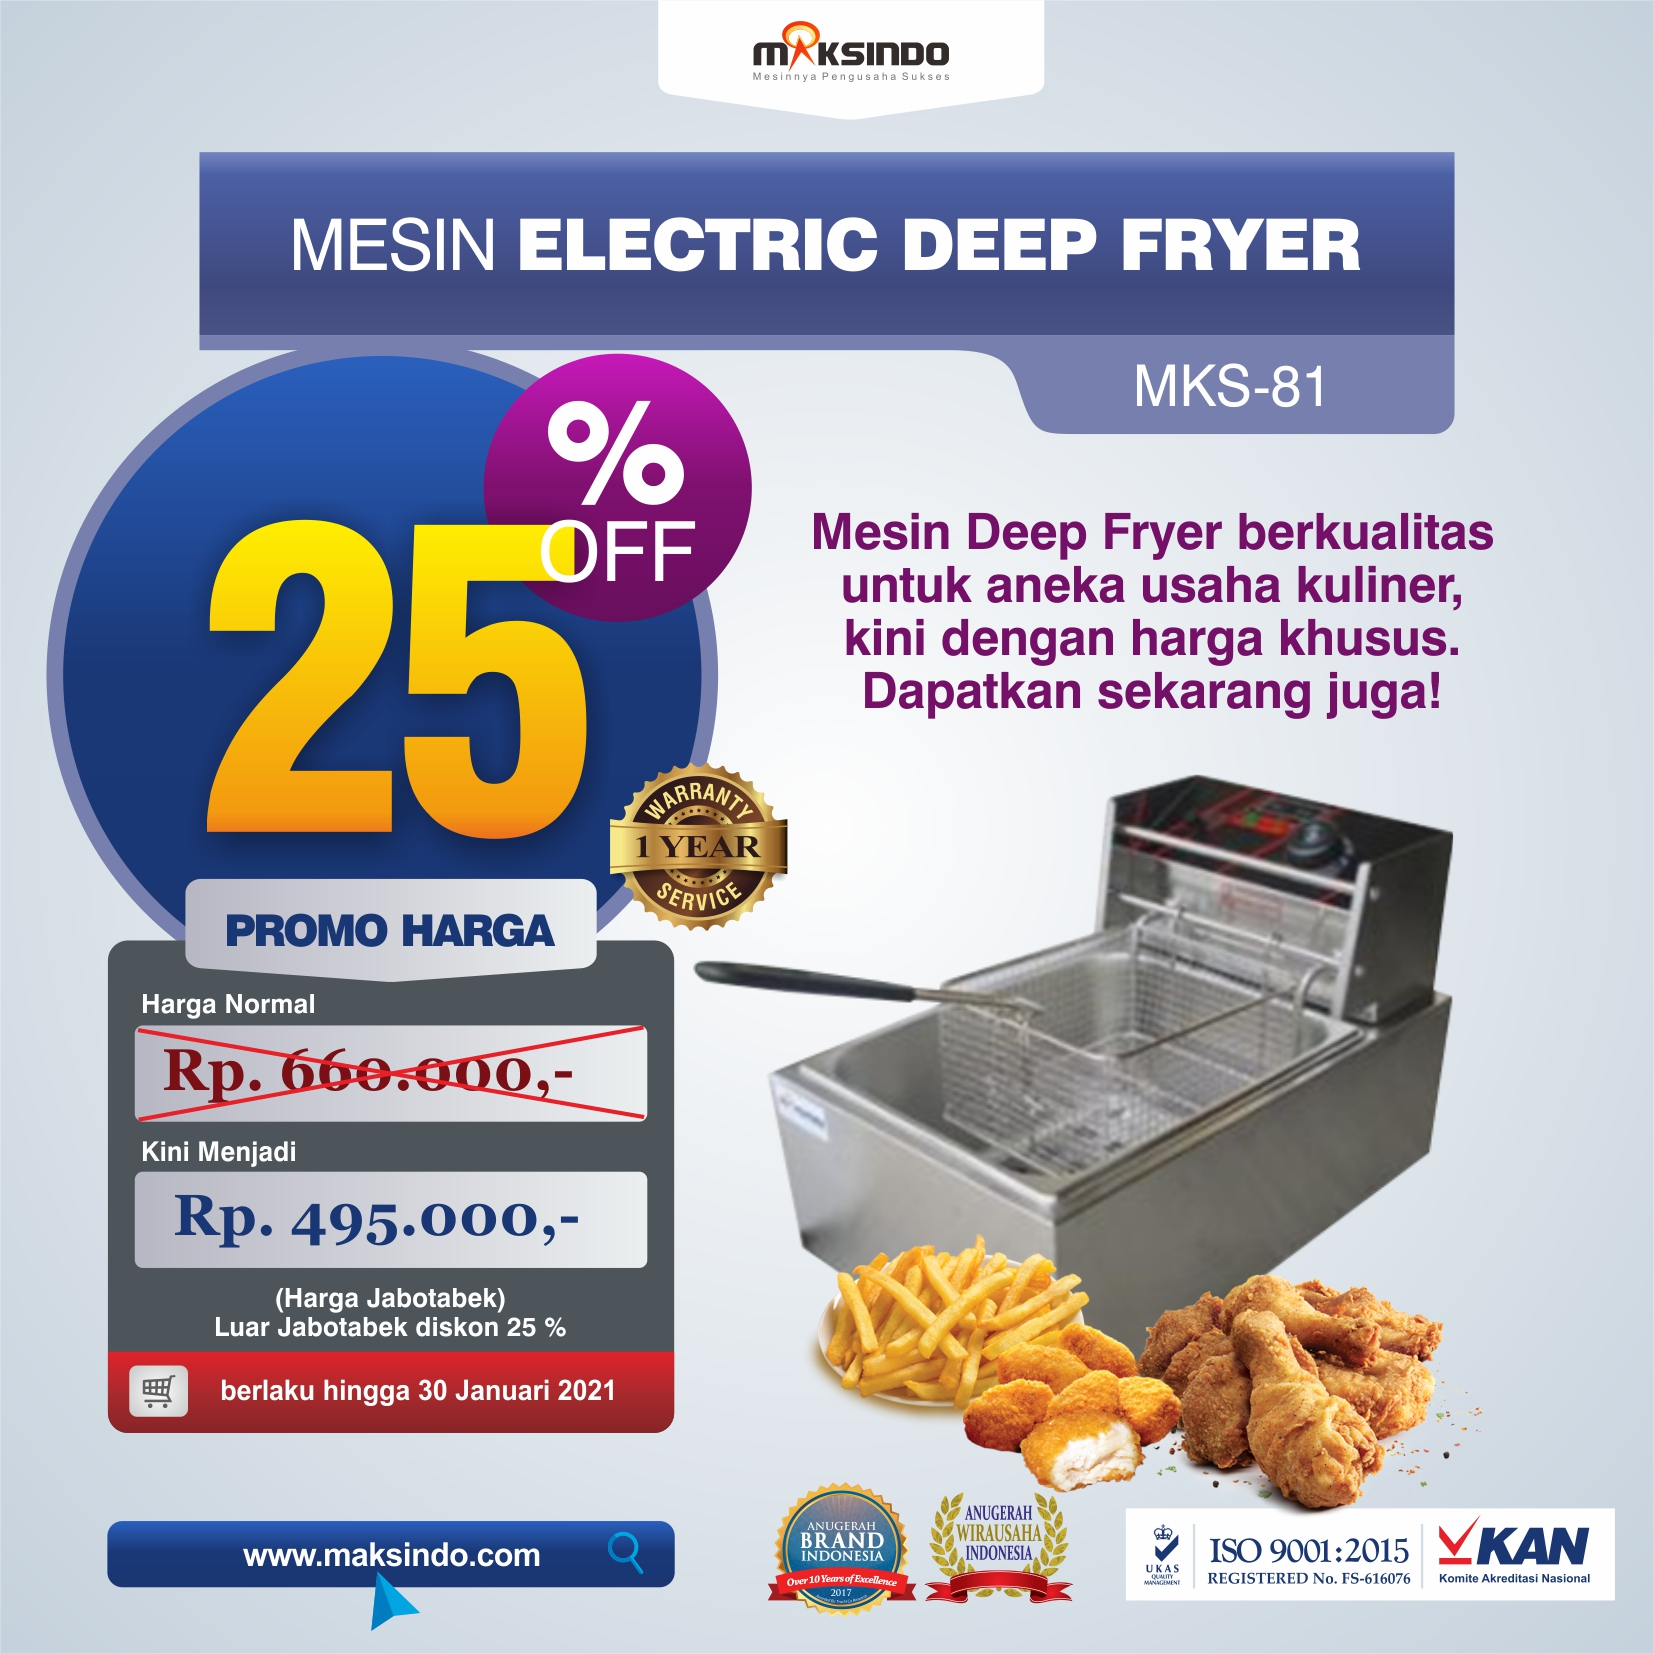 Mesin Electric Deep Fryer MKS-81